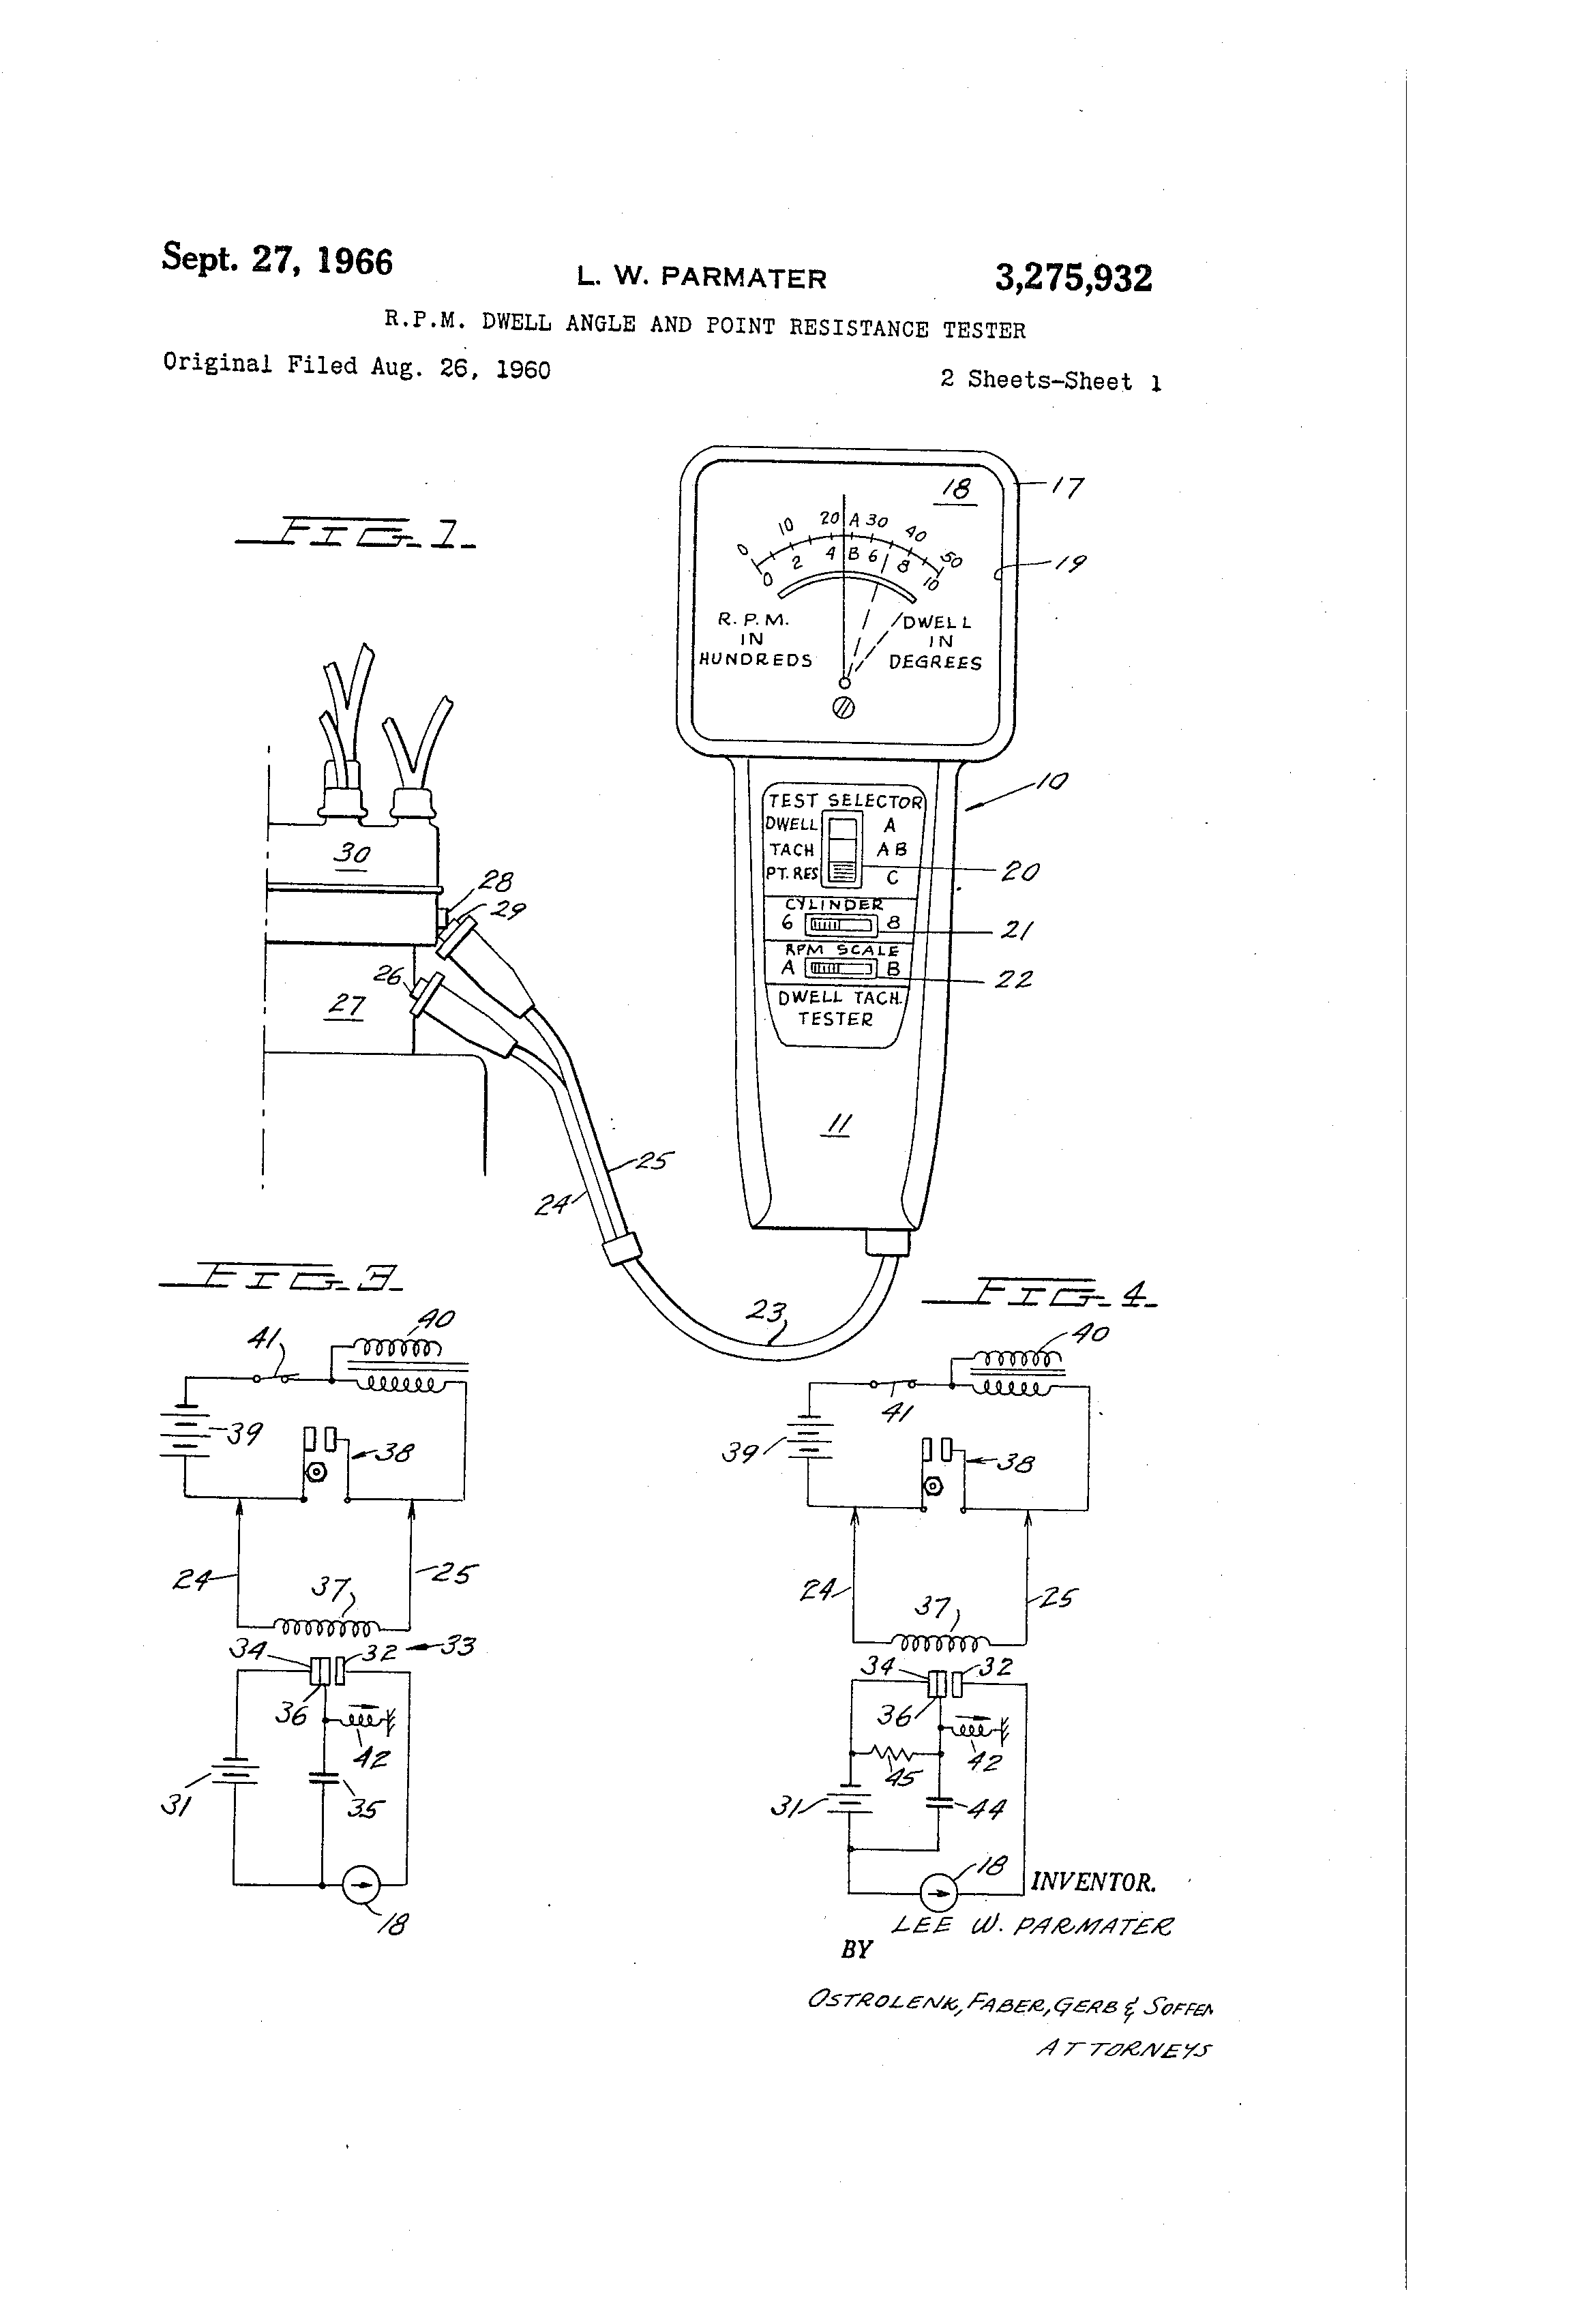 Dwell Meter Circuit Excellent Electrical Wiring Diagram House Measuringandtestcircuit Seekiccom Patent Us3275932 R P M Angle And Point Resistance Tester Rh Google Gg